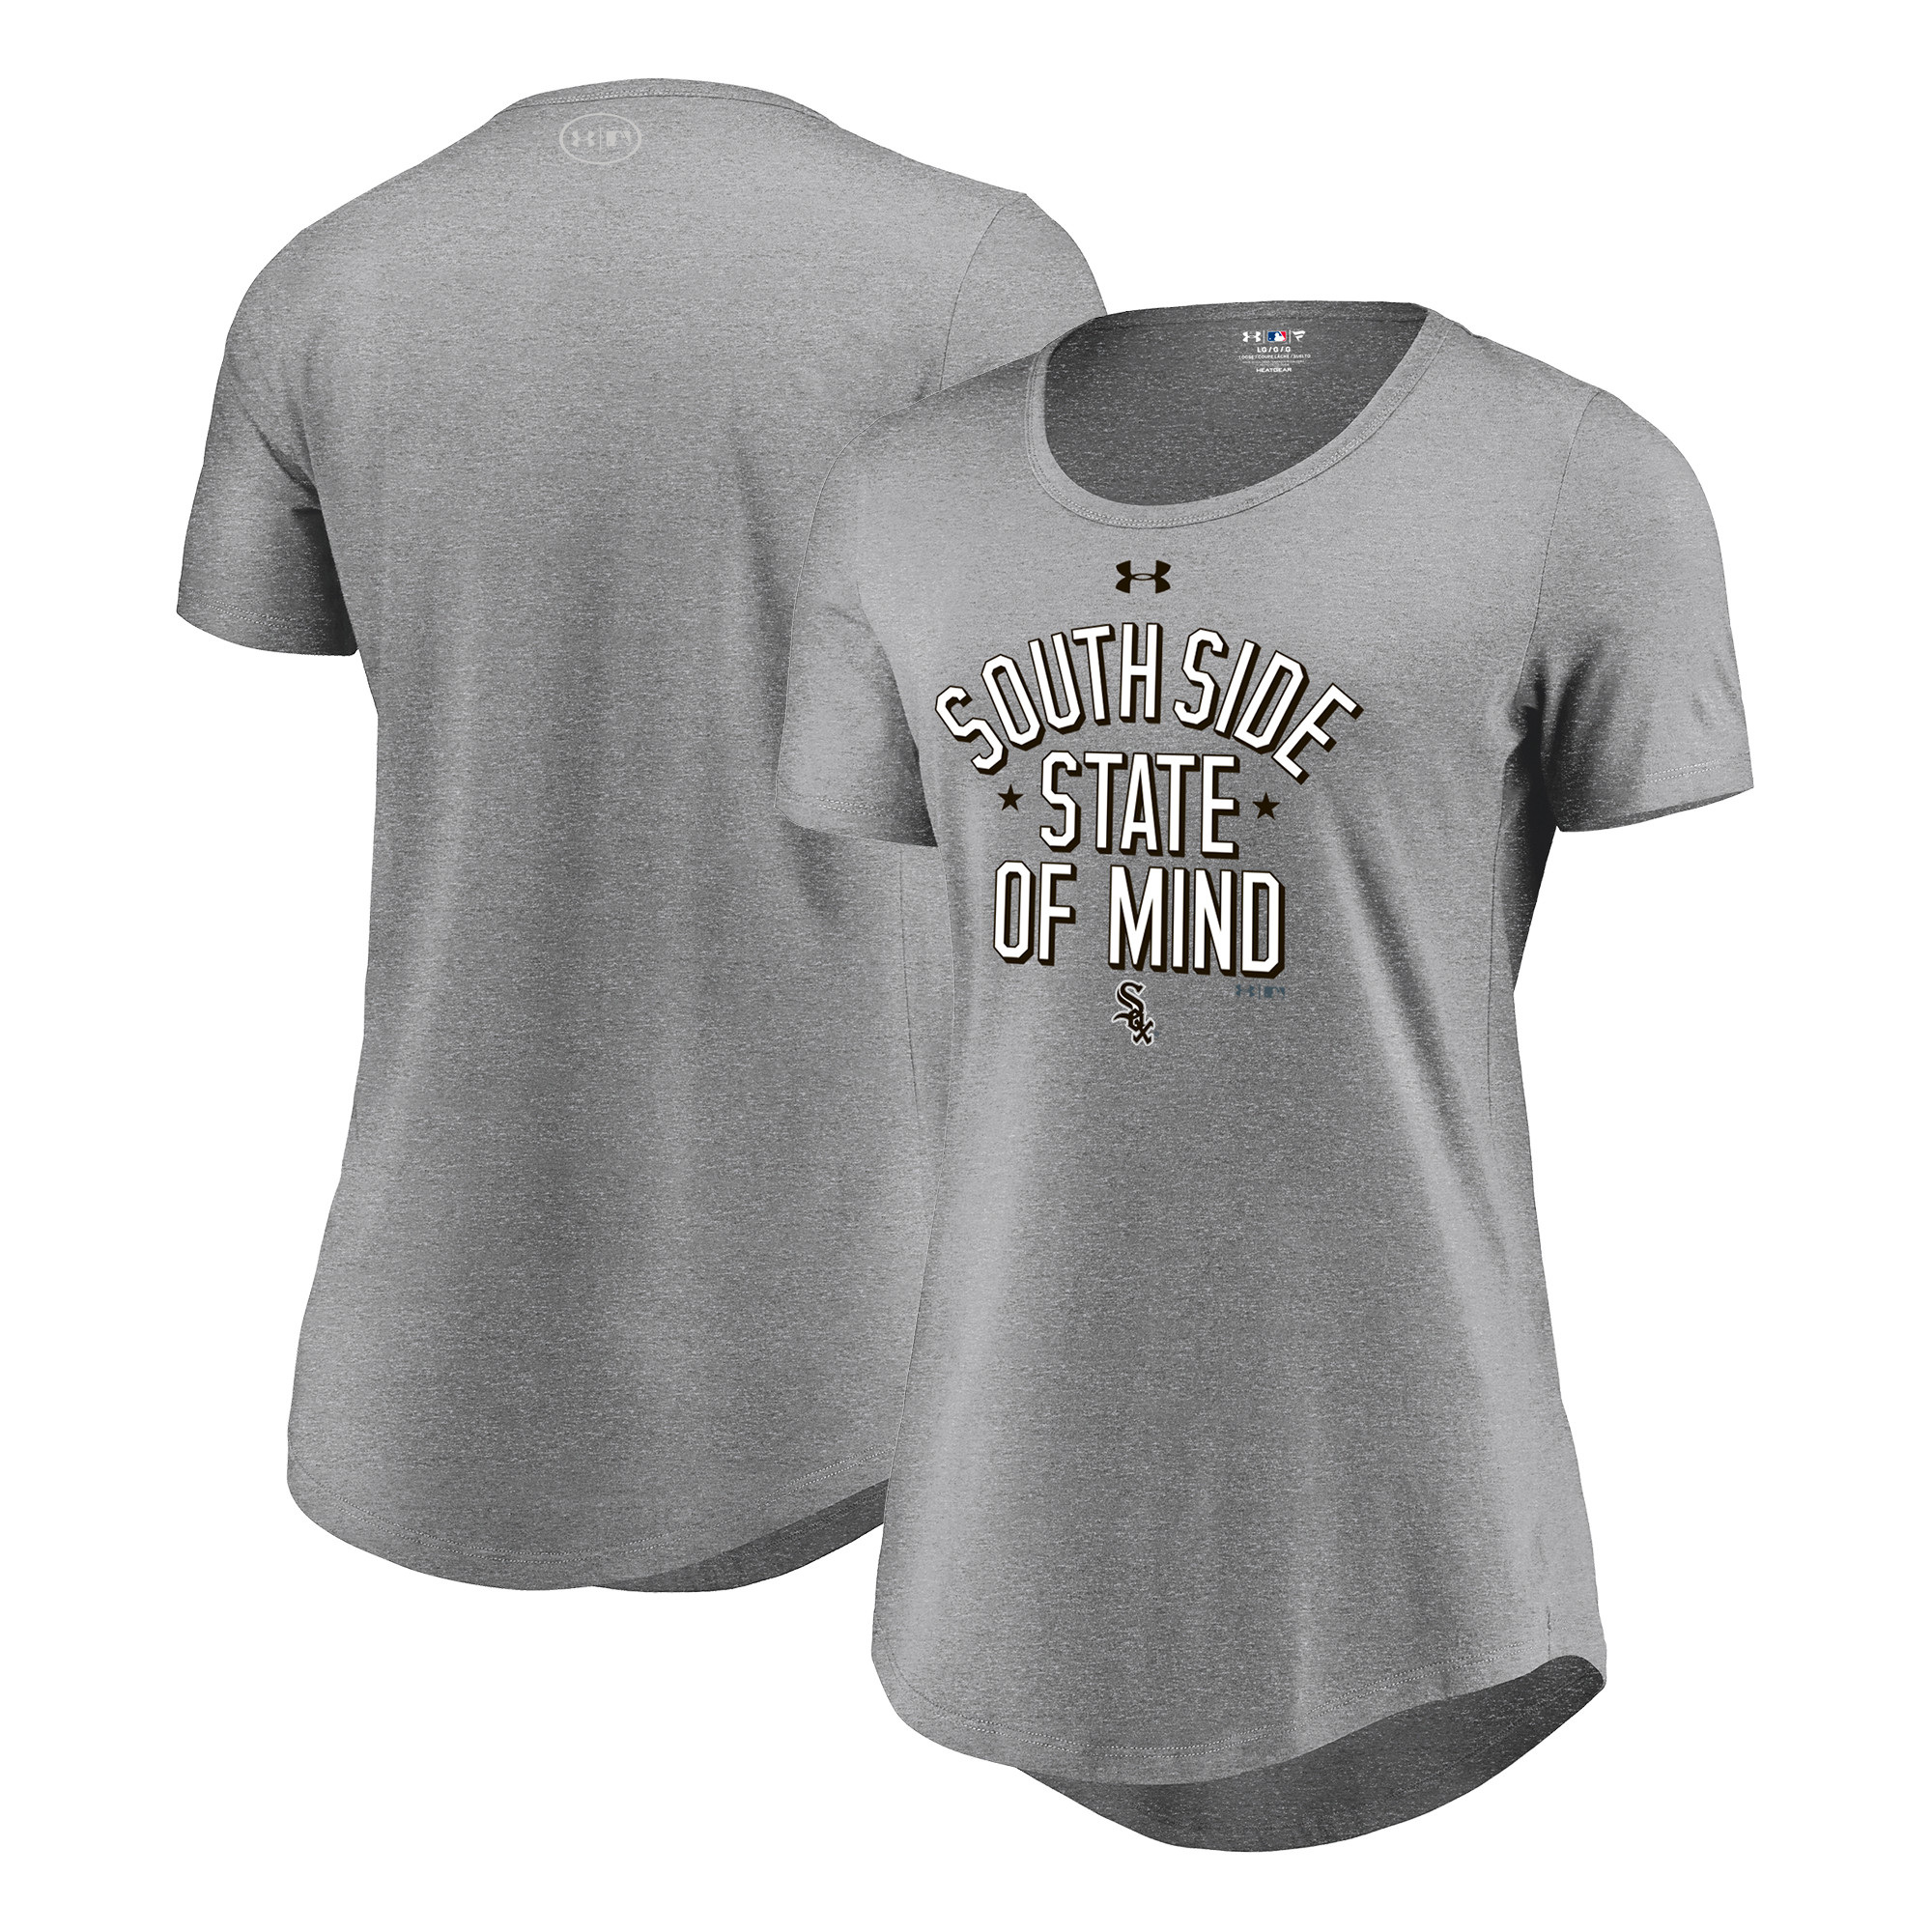 Chicago White Sox Under Armour Women's Passion State of Mind Performance Tri-Blend T-Shirt - Heathered Gray